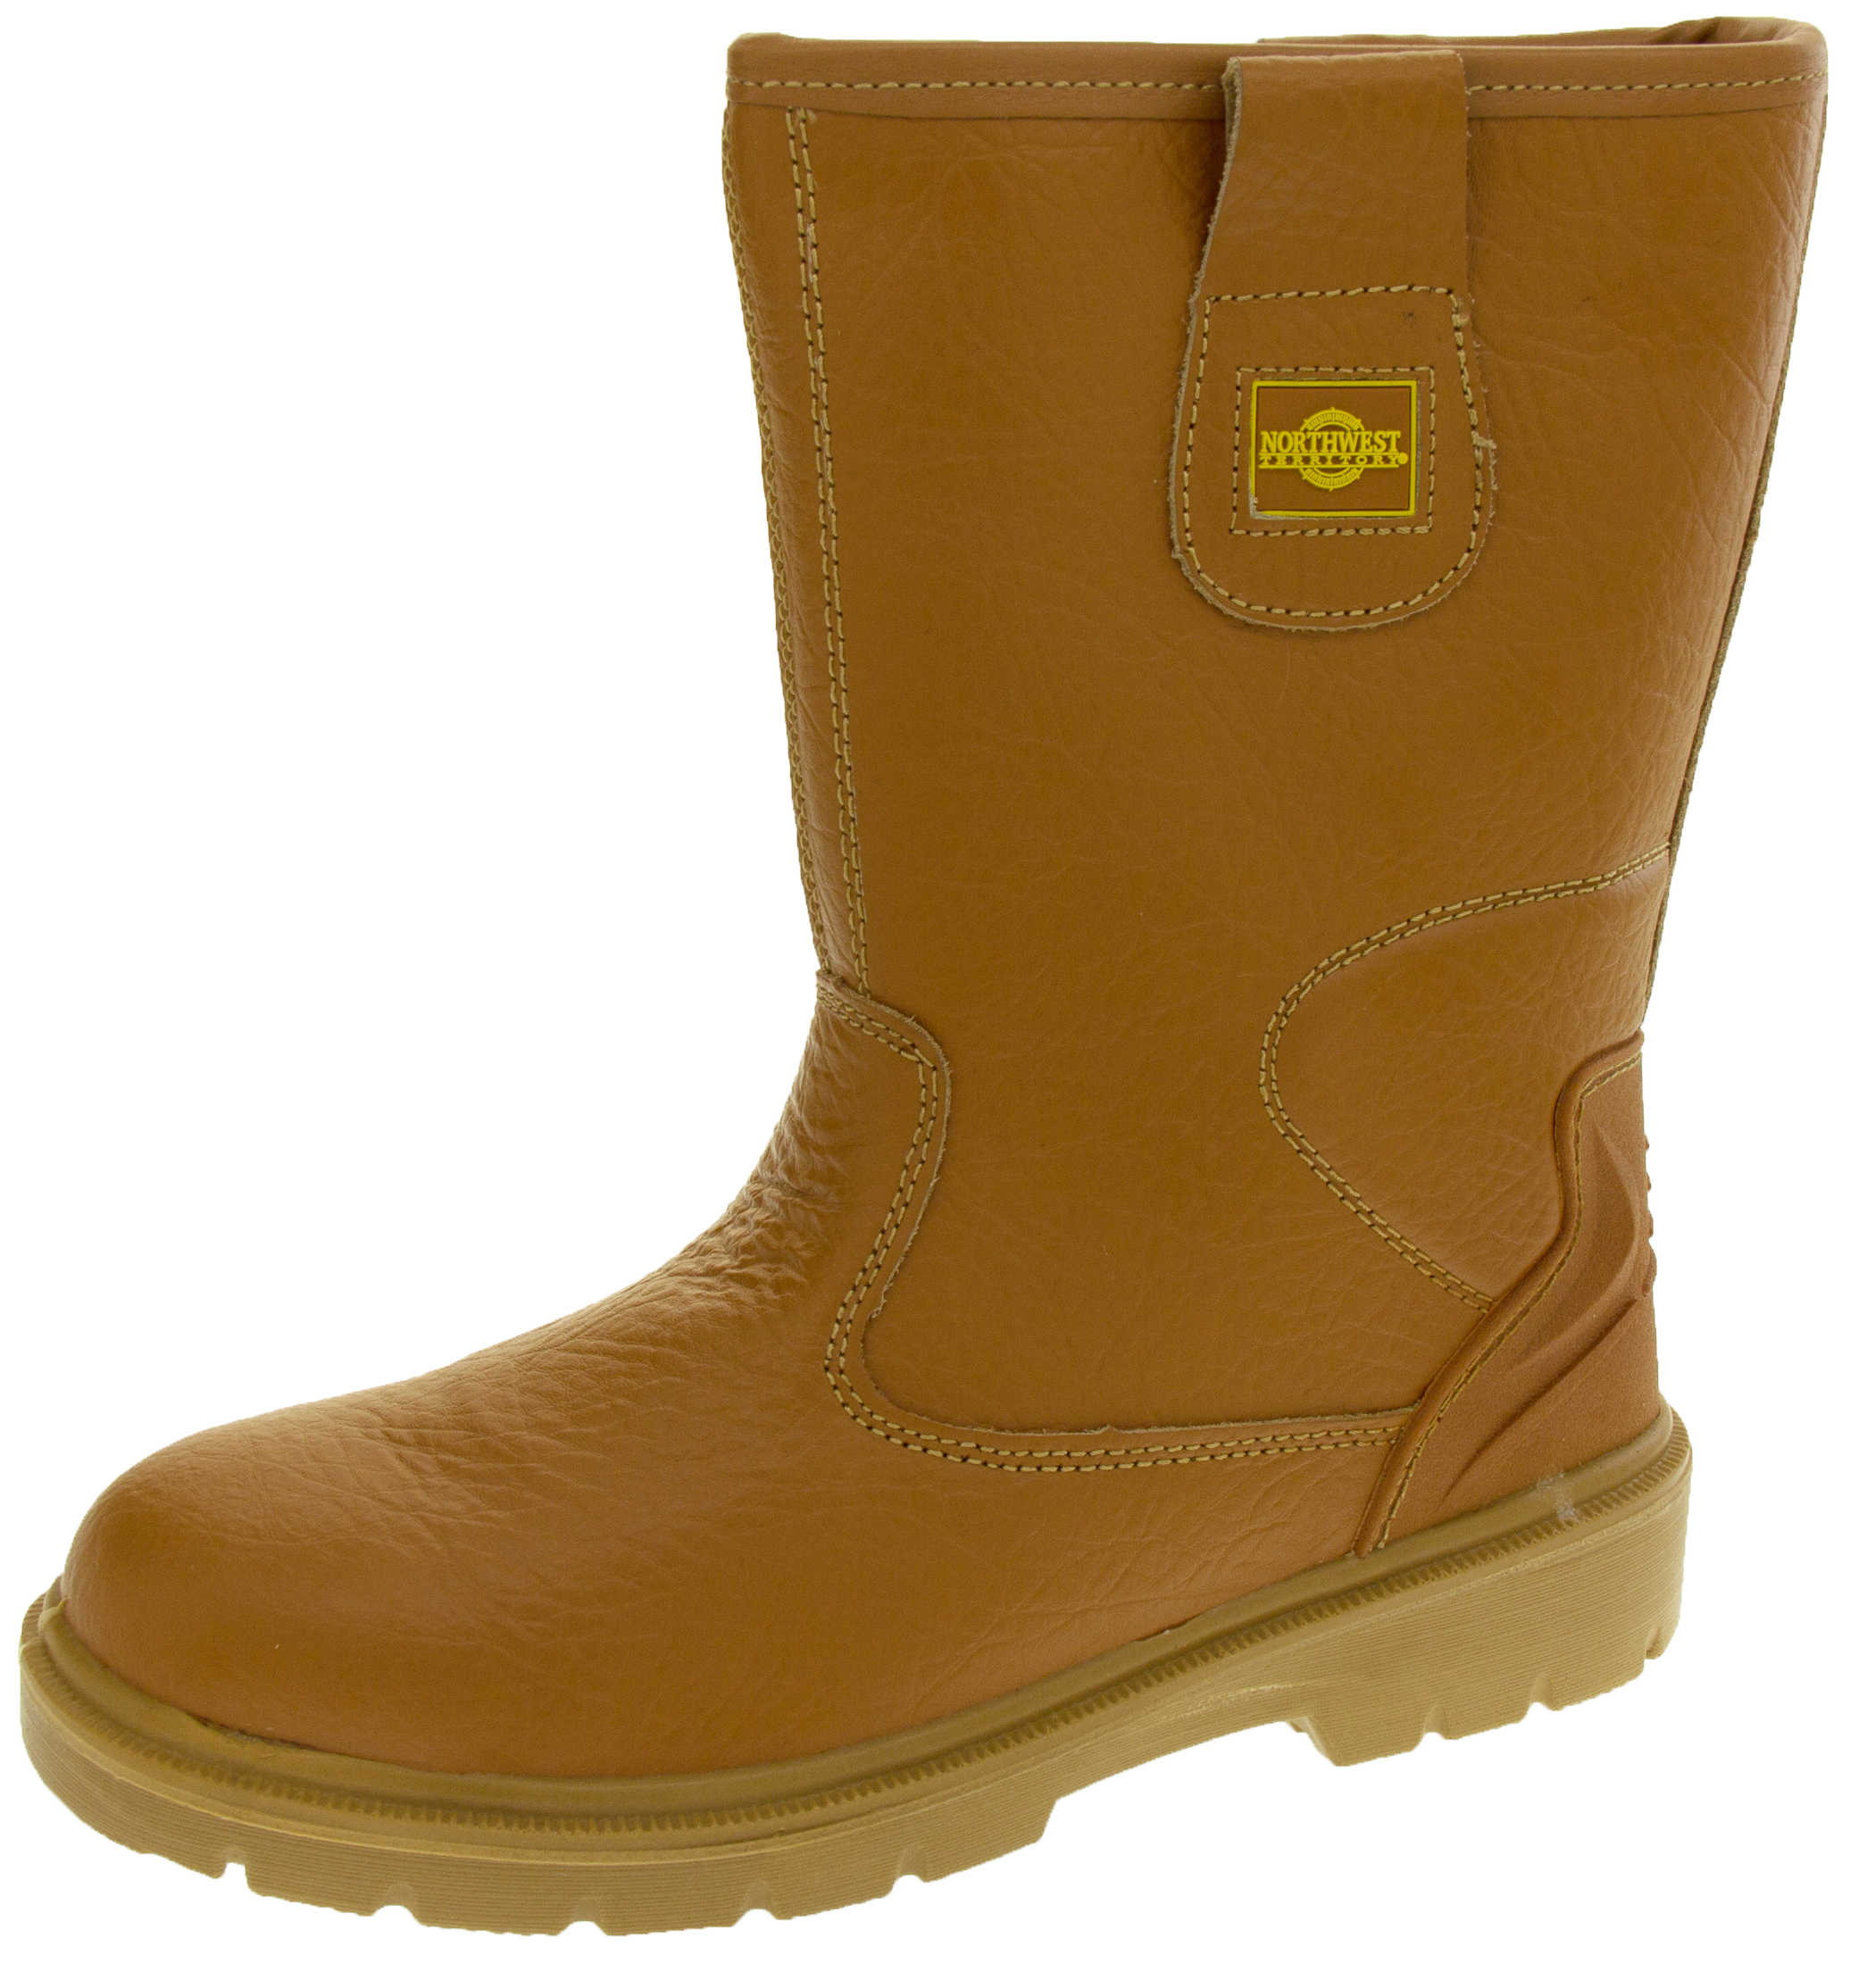 2bf3e2bf5878 Mens NorthWest Territory Darnley Safety Toe Cap Leather Rigger Boots